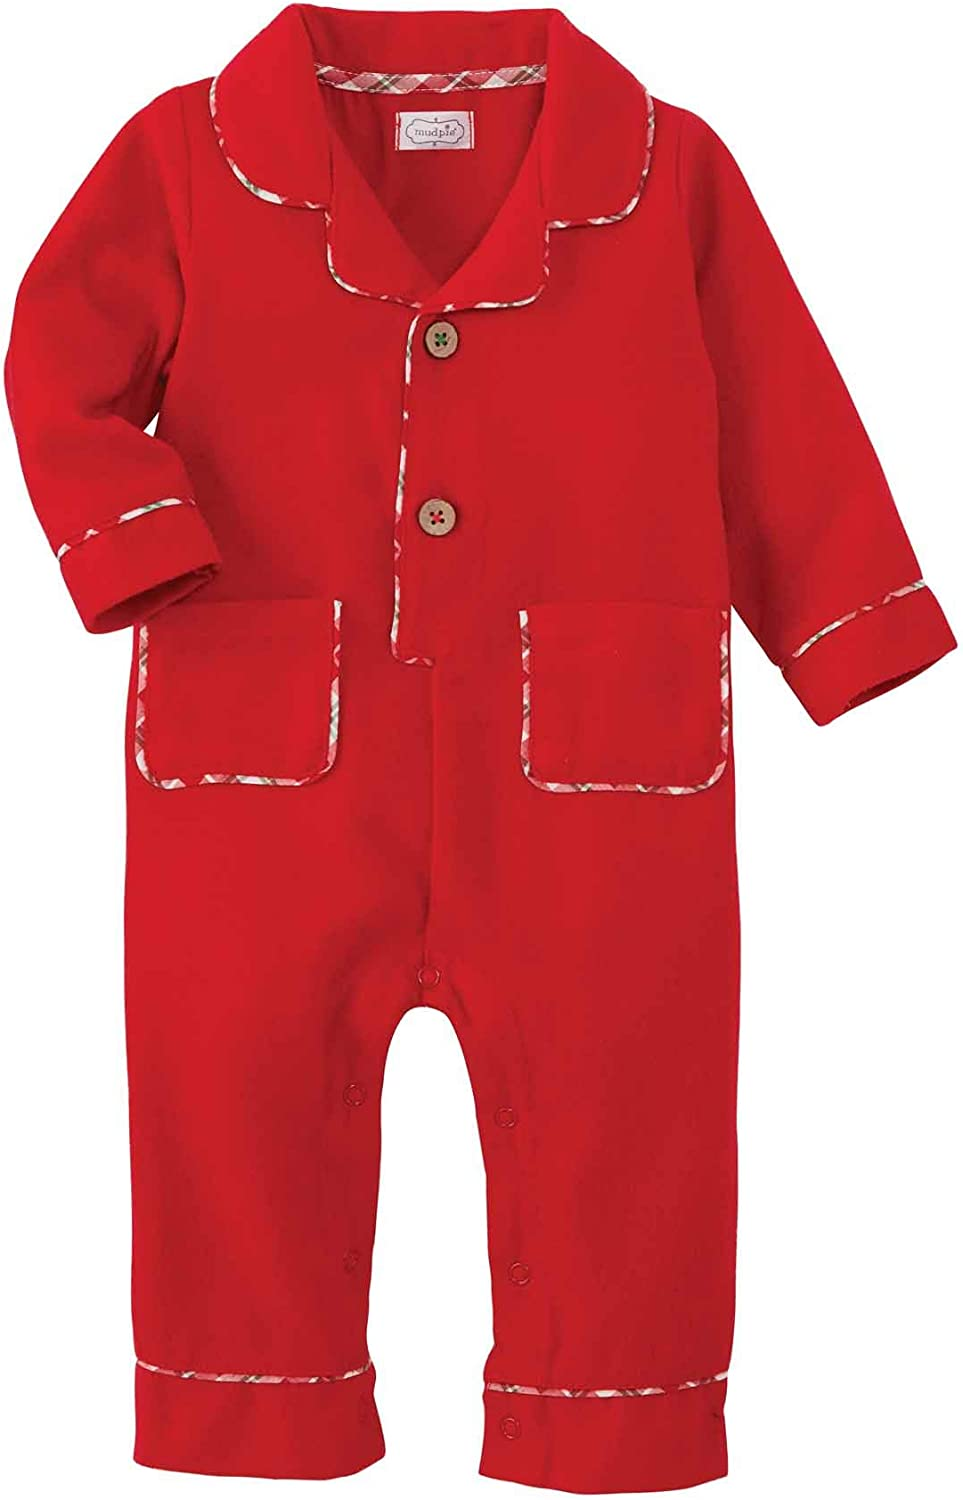 Classic Christmas Baby 1 Pc Red Flannel Pajamas PJs